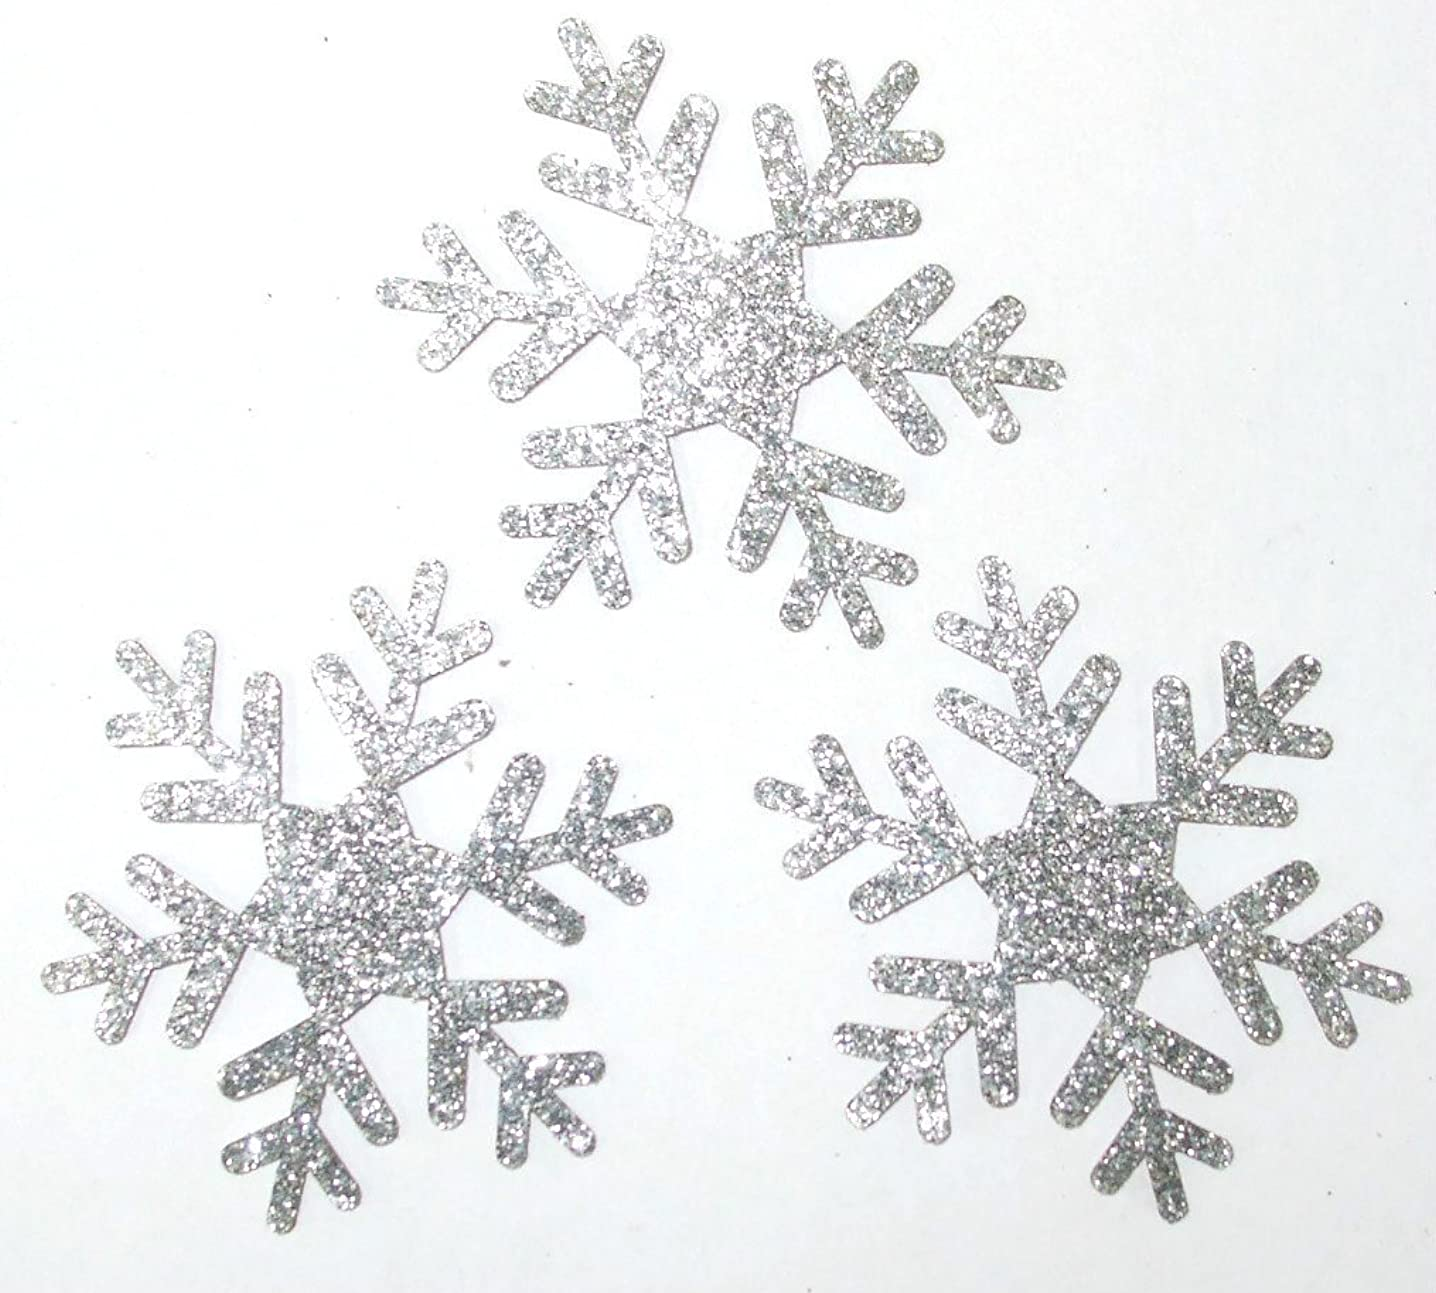 CrystalsRus Frozen Silver 5 Pack = 15 Glitter 2 Inch Snowflake Iron-On